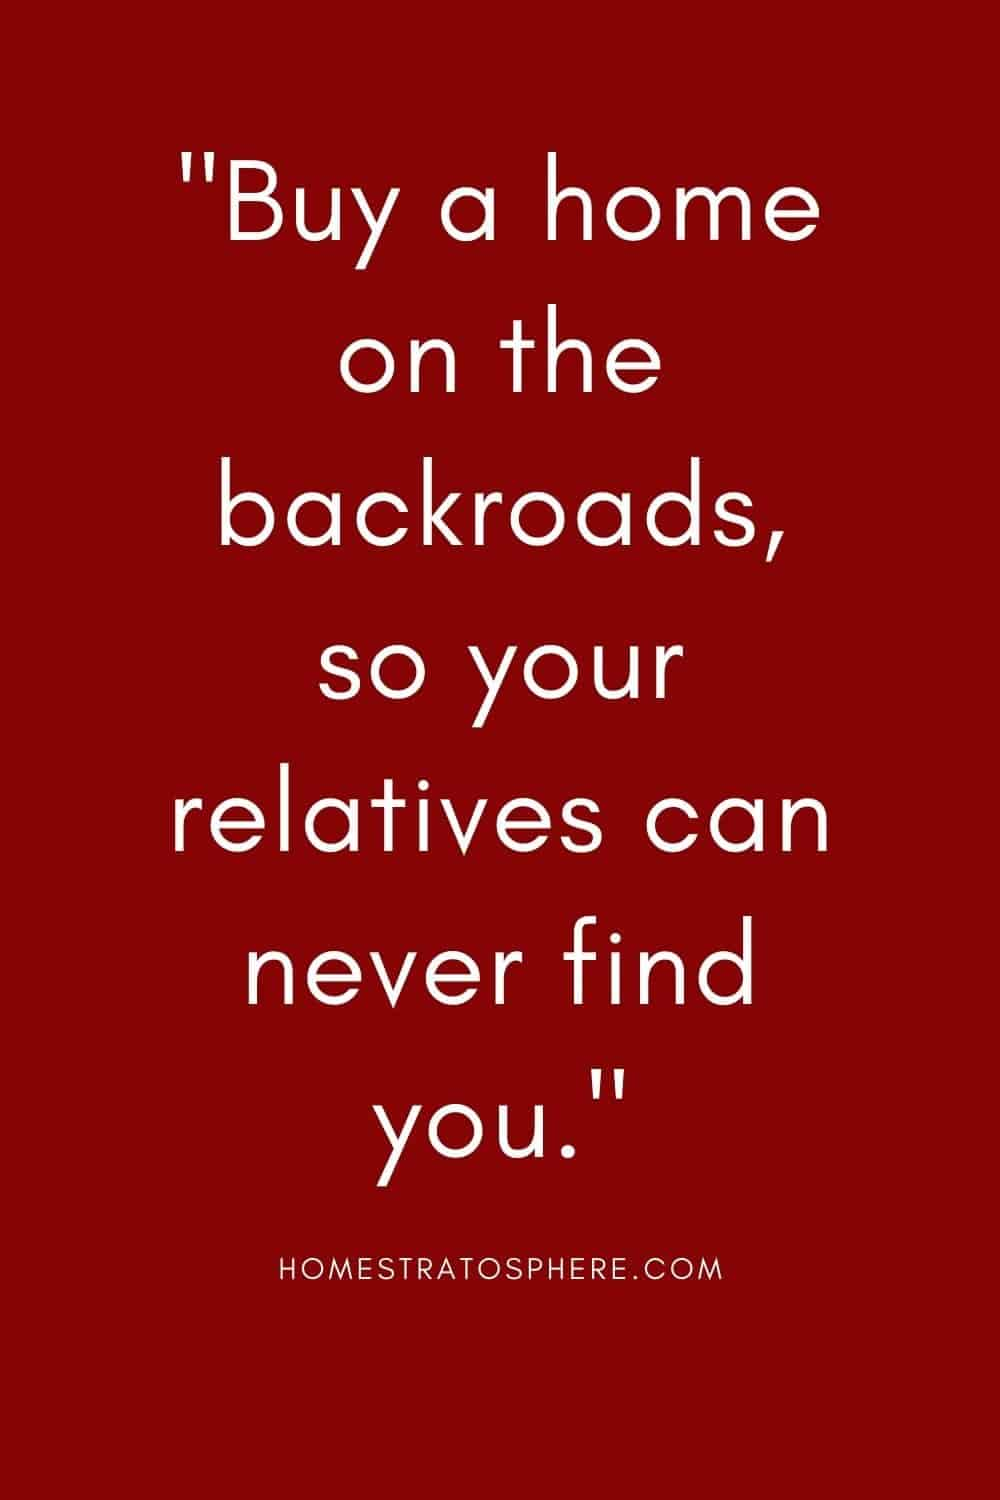 """Buy a home on the backroads, so your relatives can never find you."""